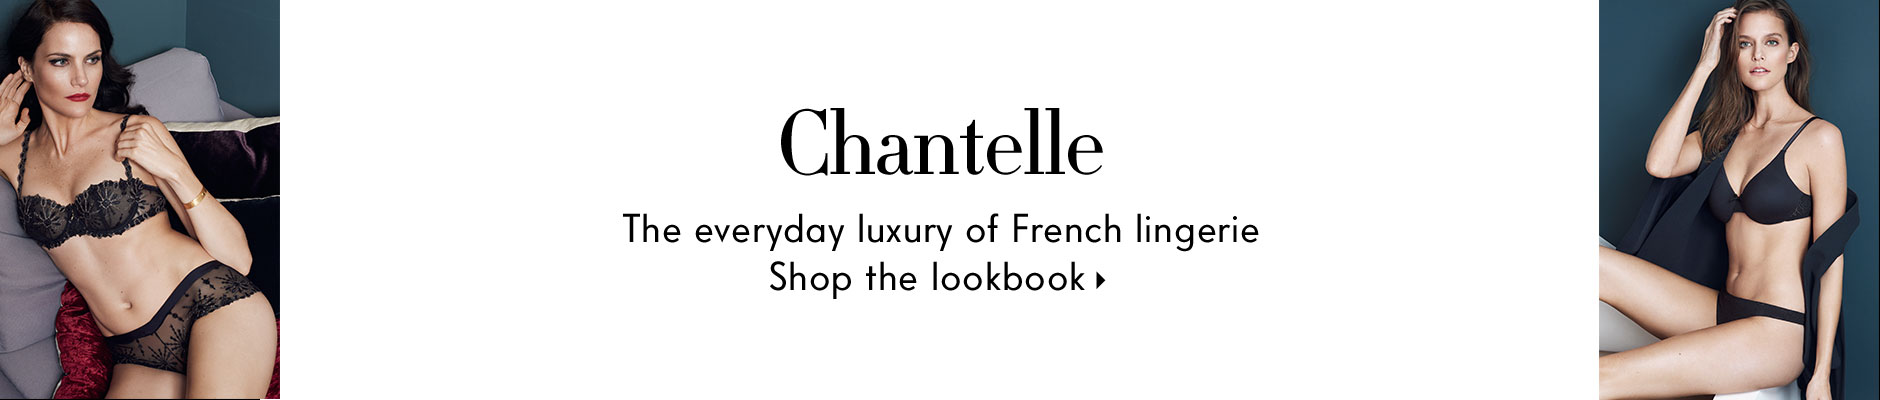 Chantelle The everyday luxury of French lingerie